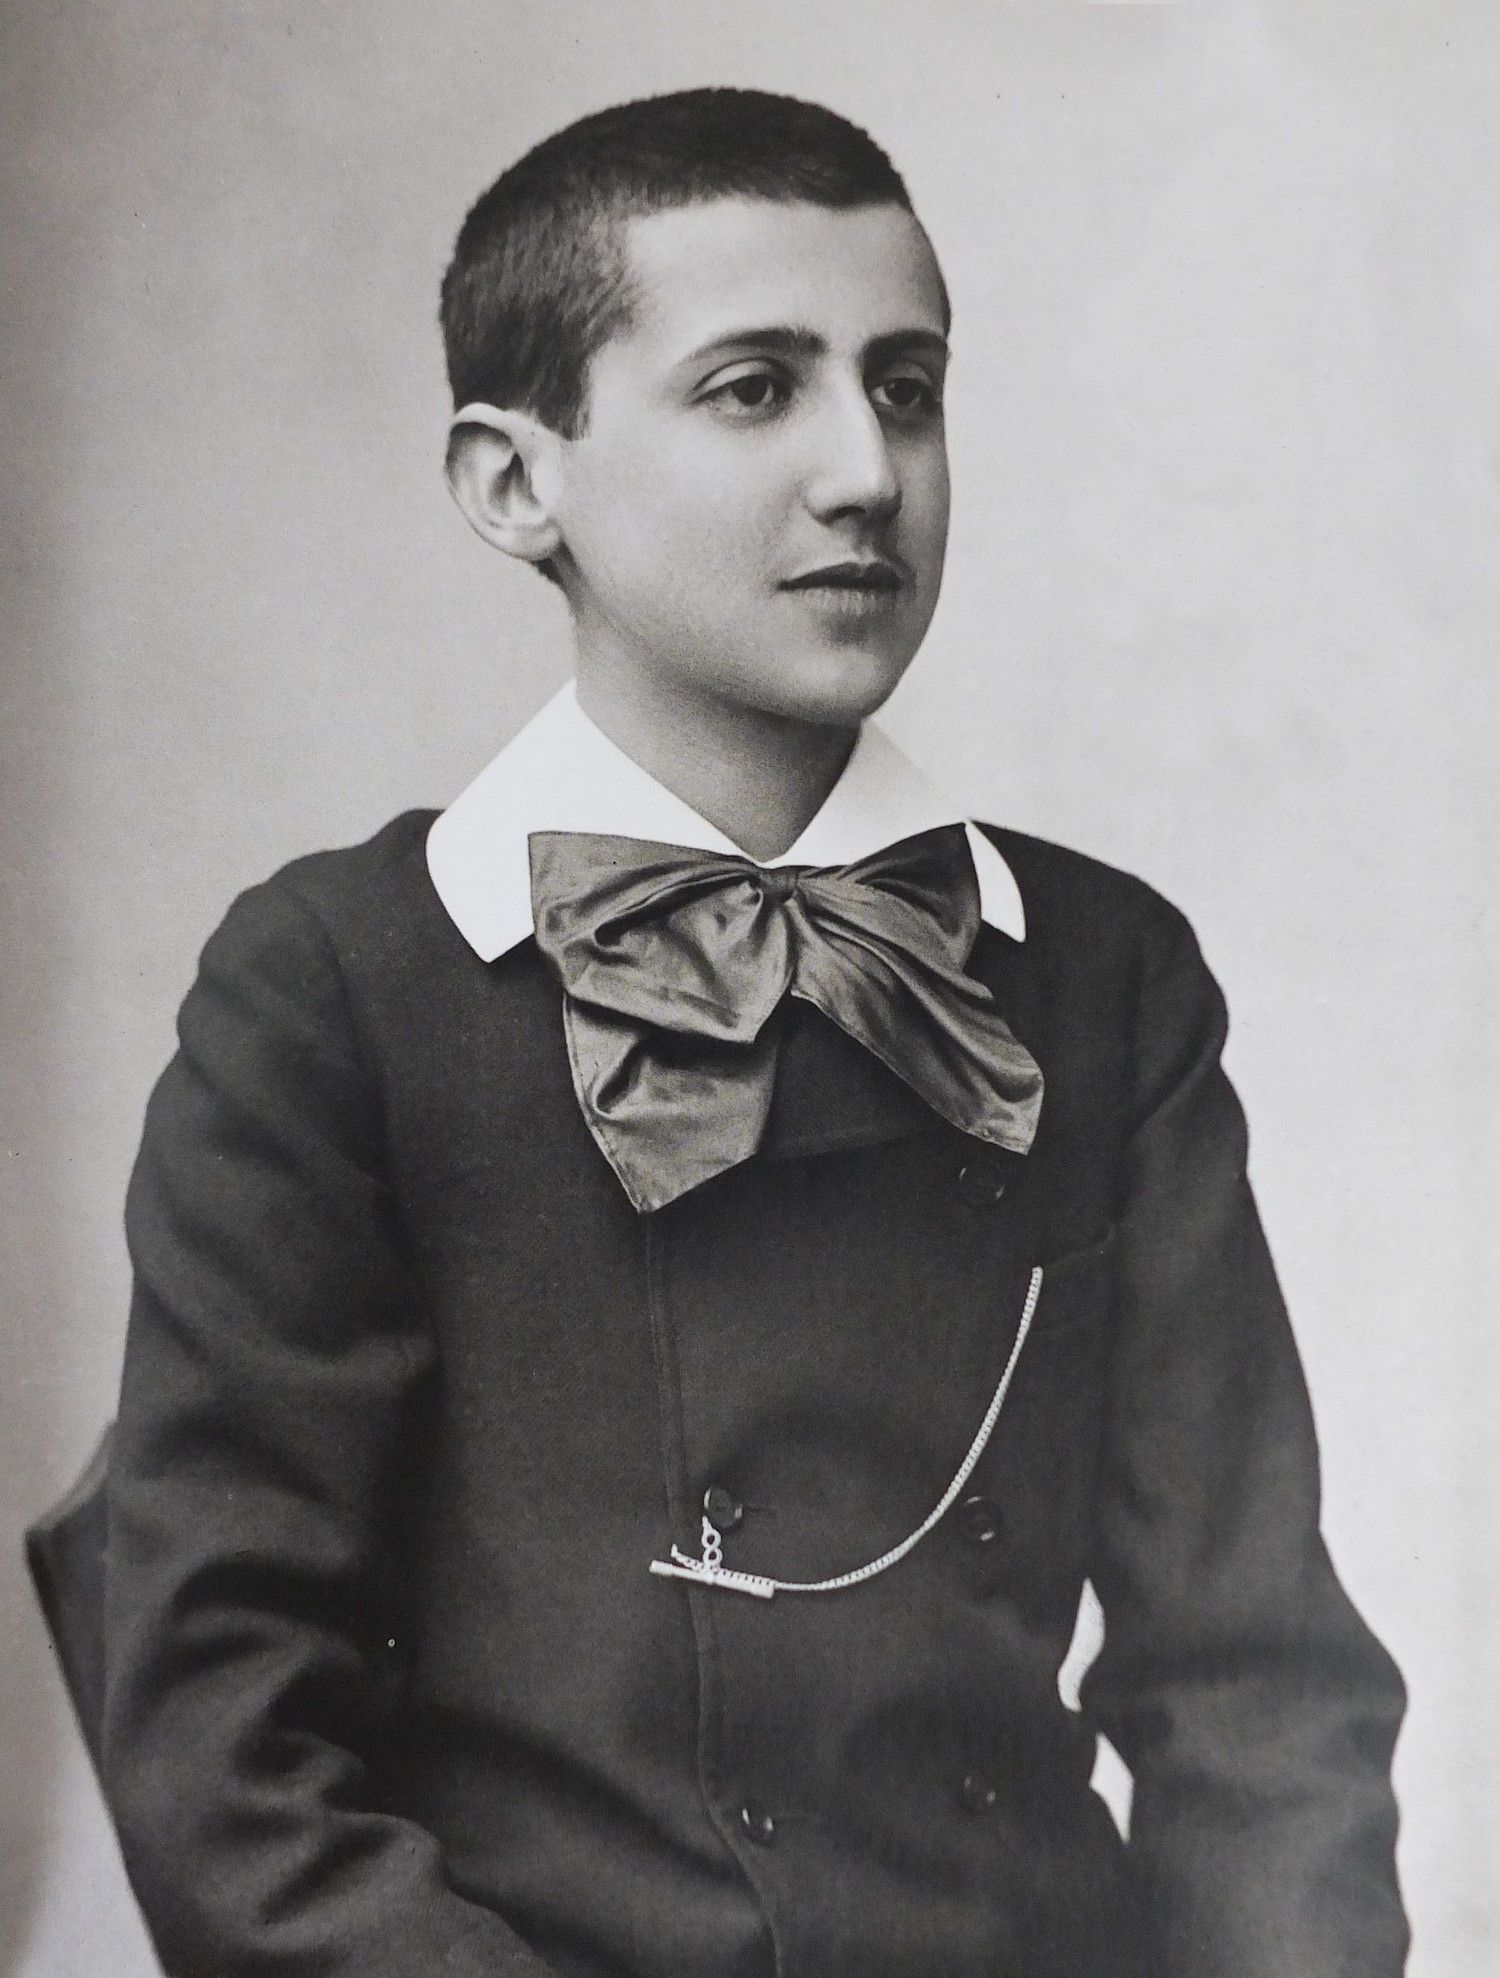 Photographof Proust as a youthby Paul Nadar, 1887.